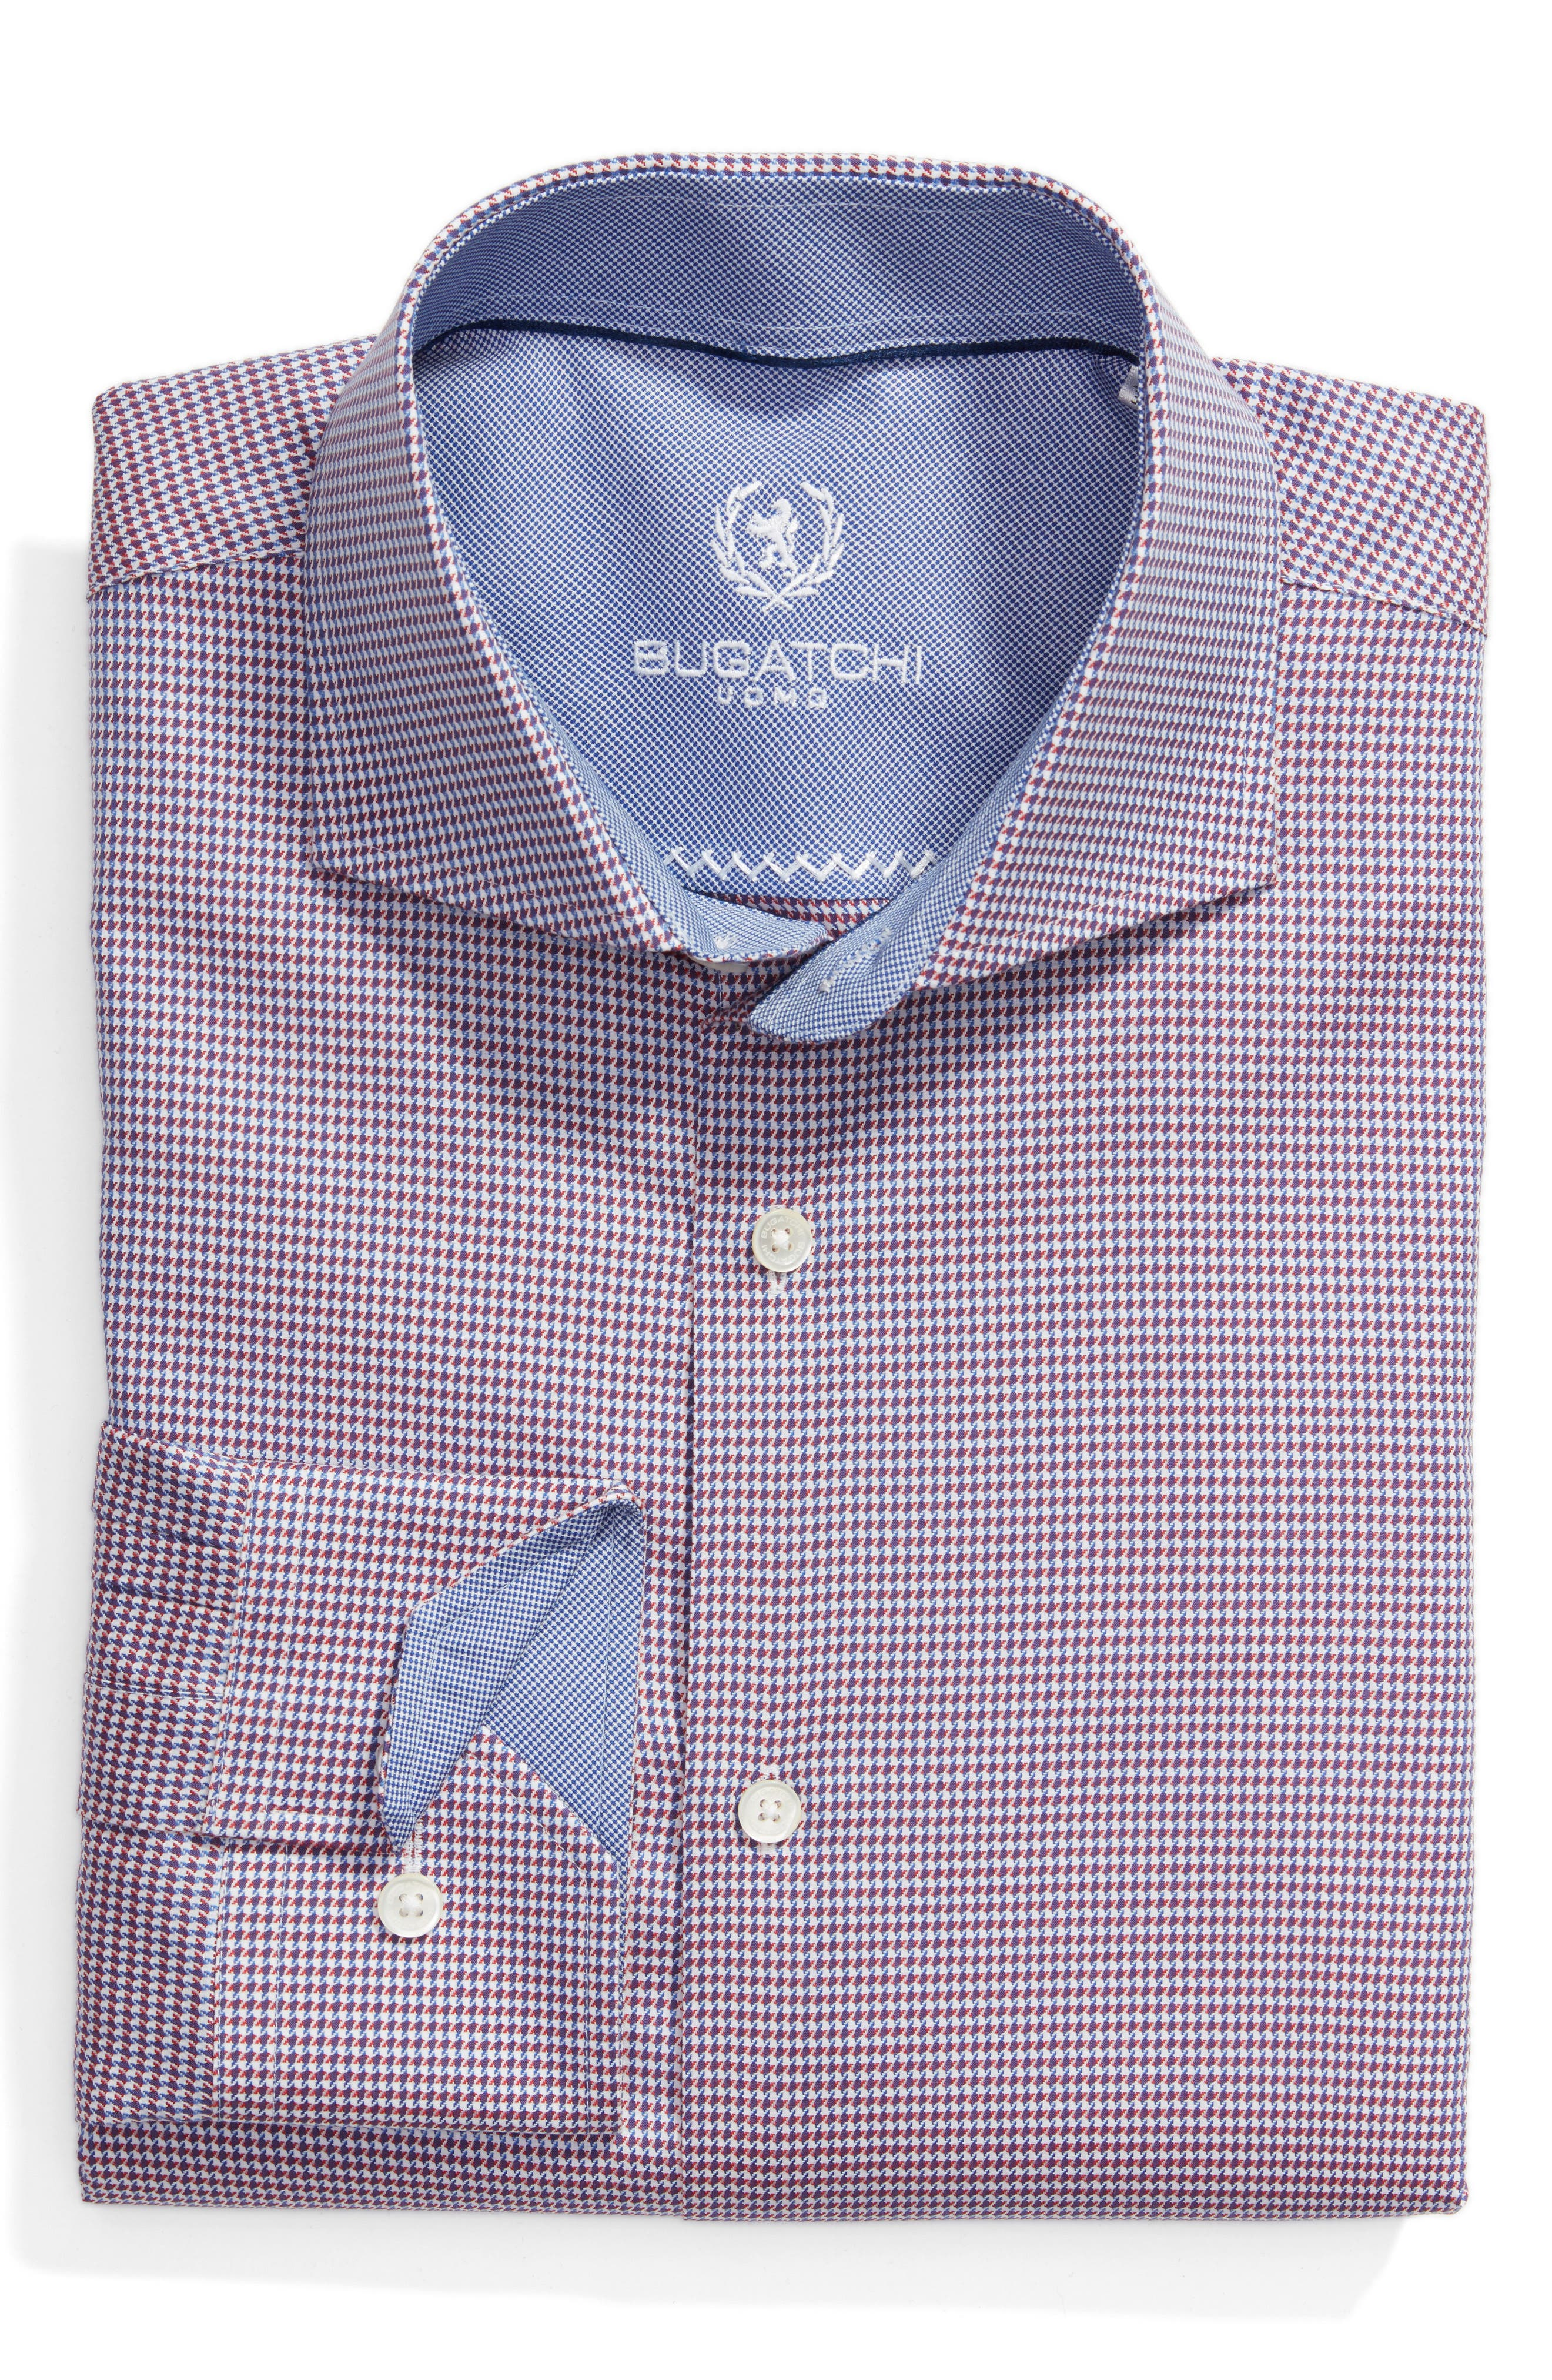 Trim Fit Houndstooth Dress Shirt,                         Main,                         color, Ruby